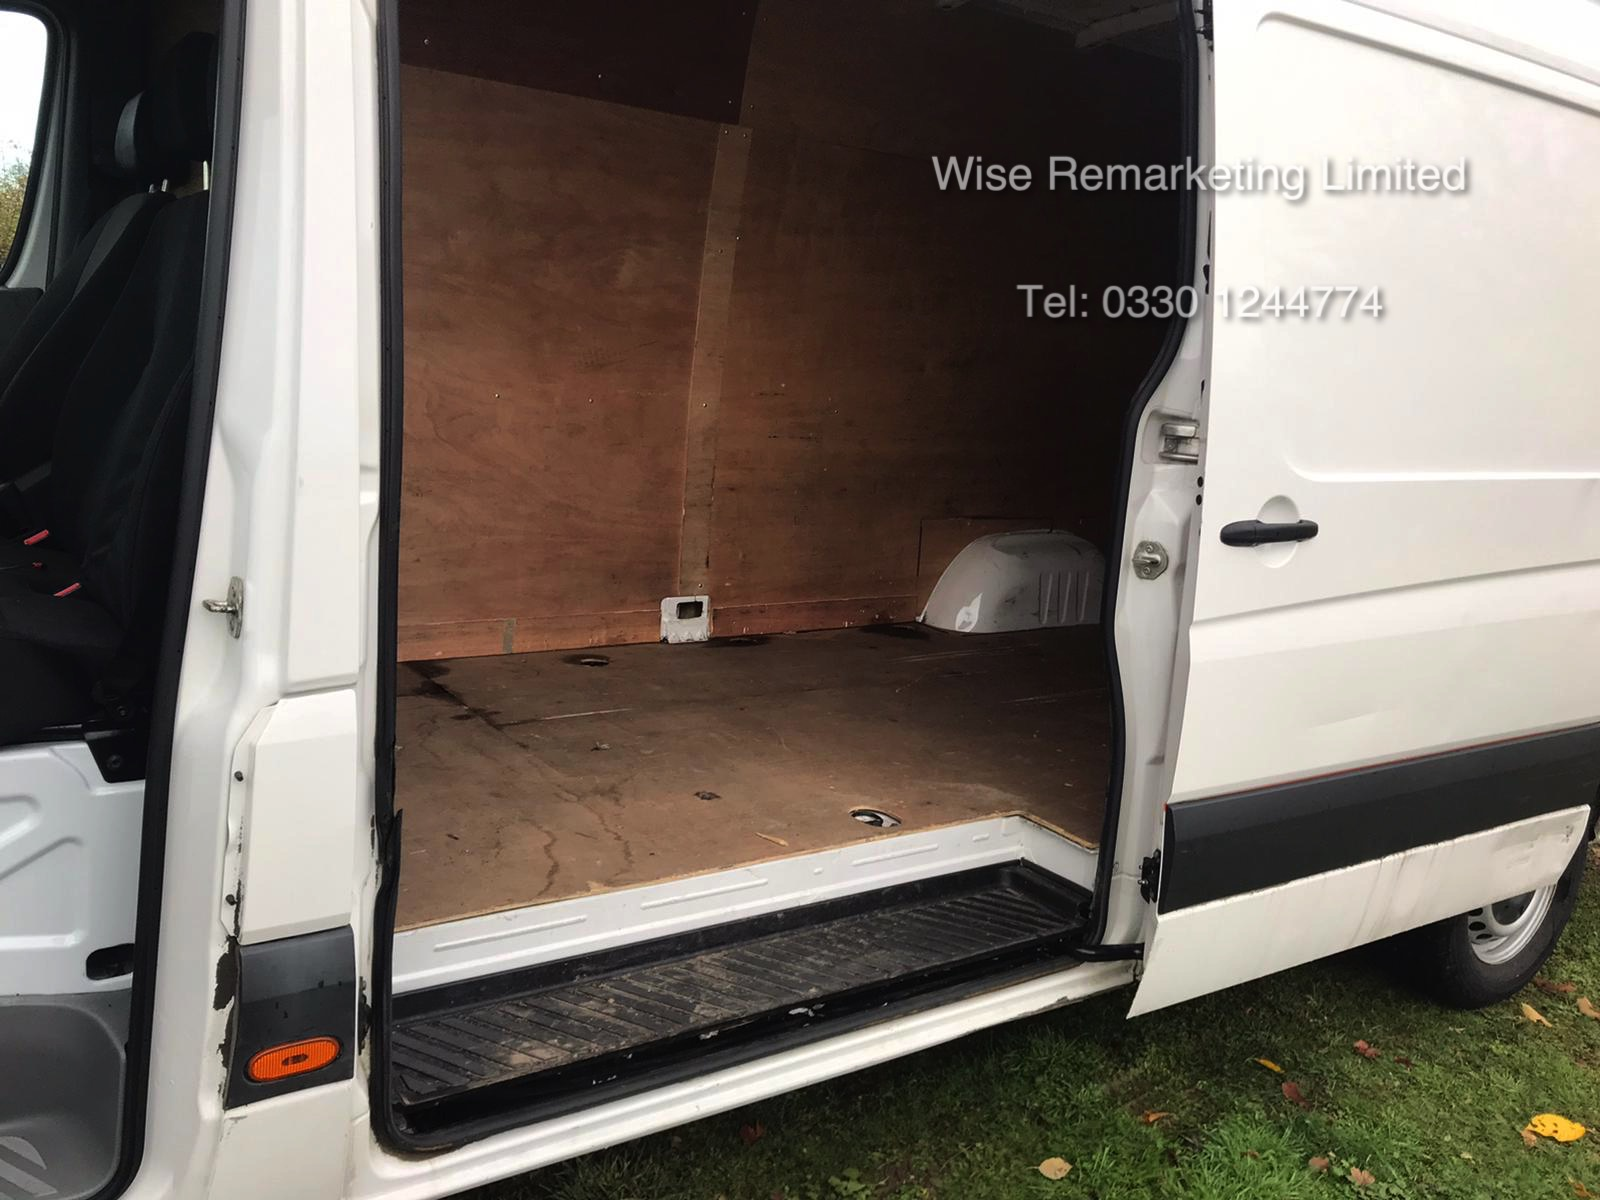 Volkswagen Crafter CR35 Startline 2.0l TDi - LWB - 2016 Model -1 Keeper From New - Service History - Image 6 of 15